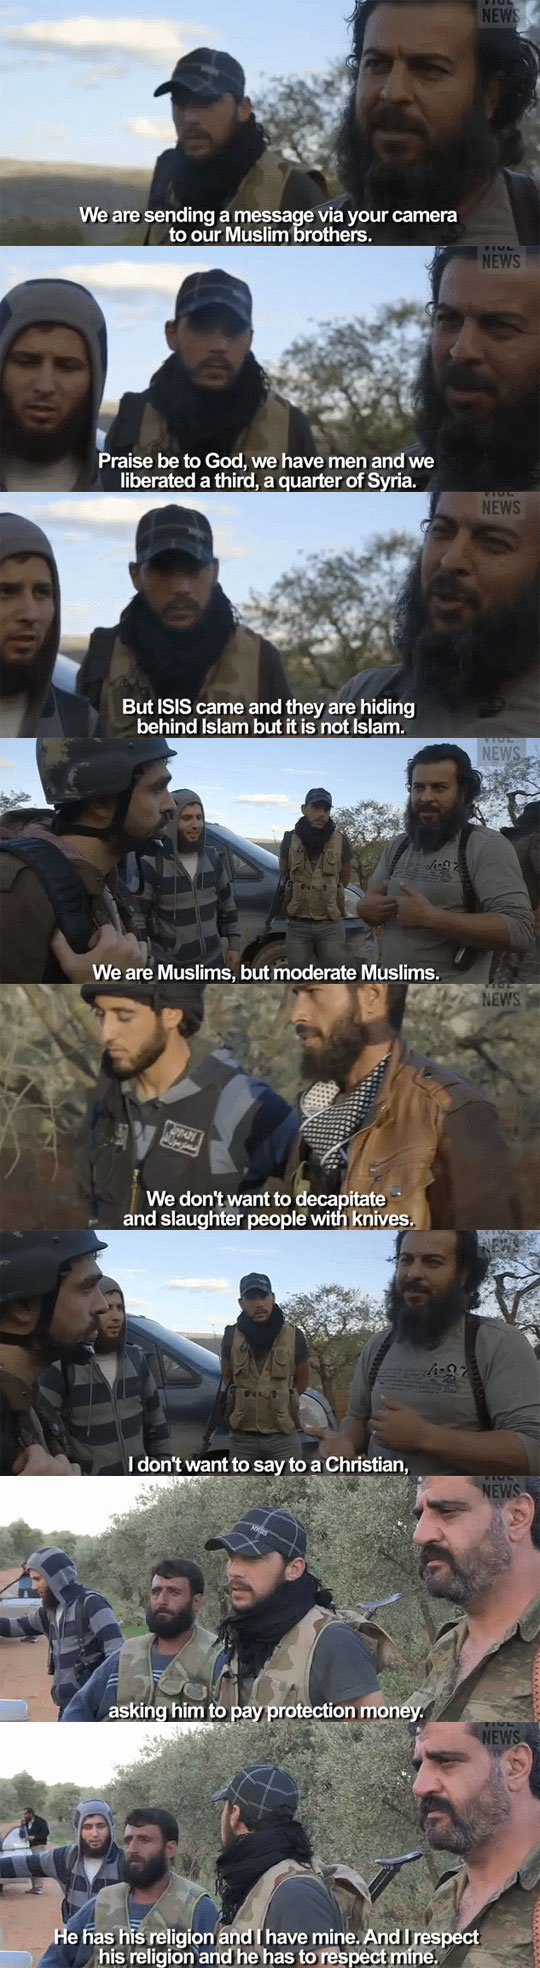 True Islam. . We are sending a messes e via your camera to our Muslim rathers. Praise be to God, we have men and we liberated a third, a quarter of til lie. But